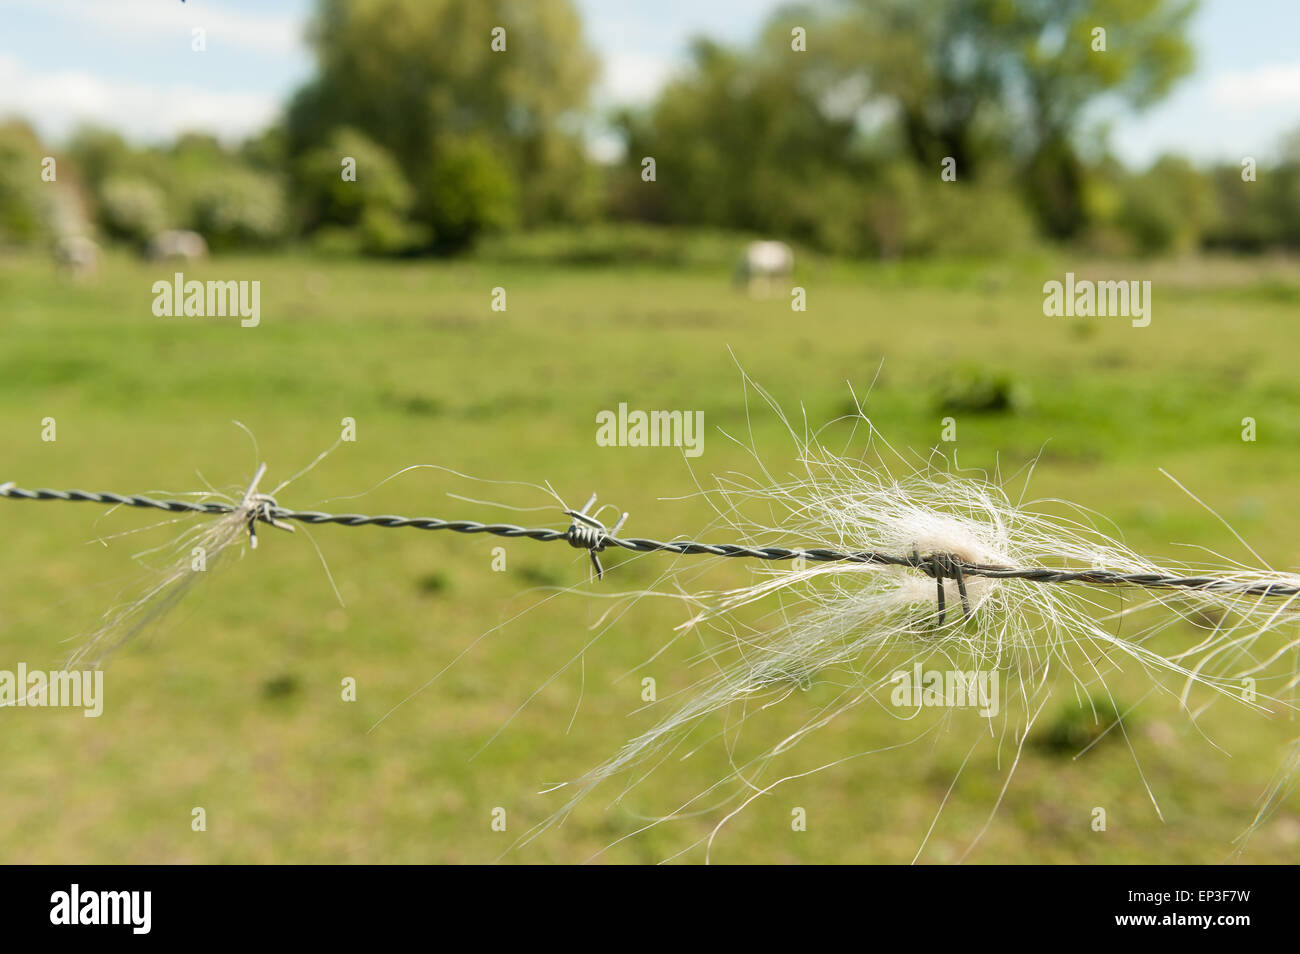 A deterrent sharp barbed wire fence on paddock field with trapped caught course  horse and pony mane hairs - Stock Image